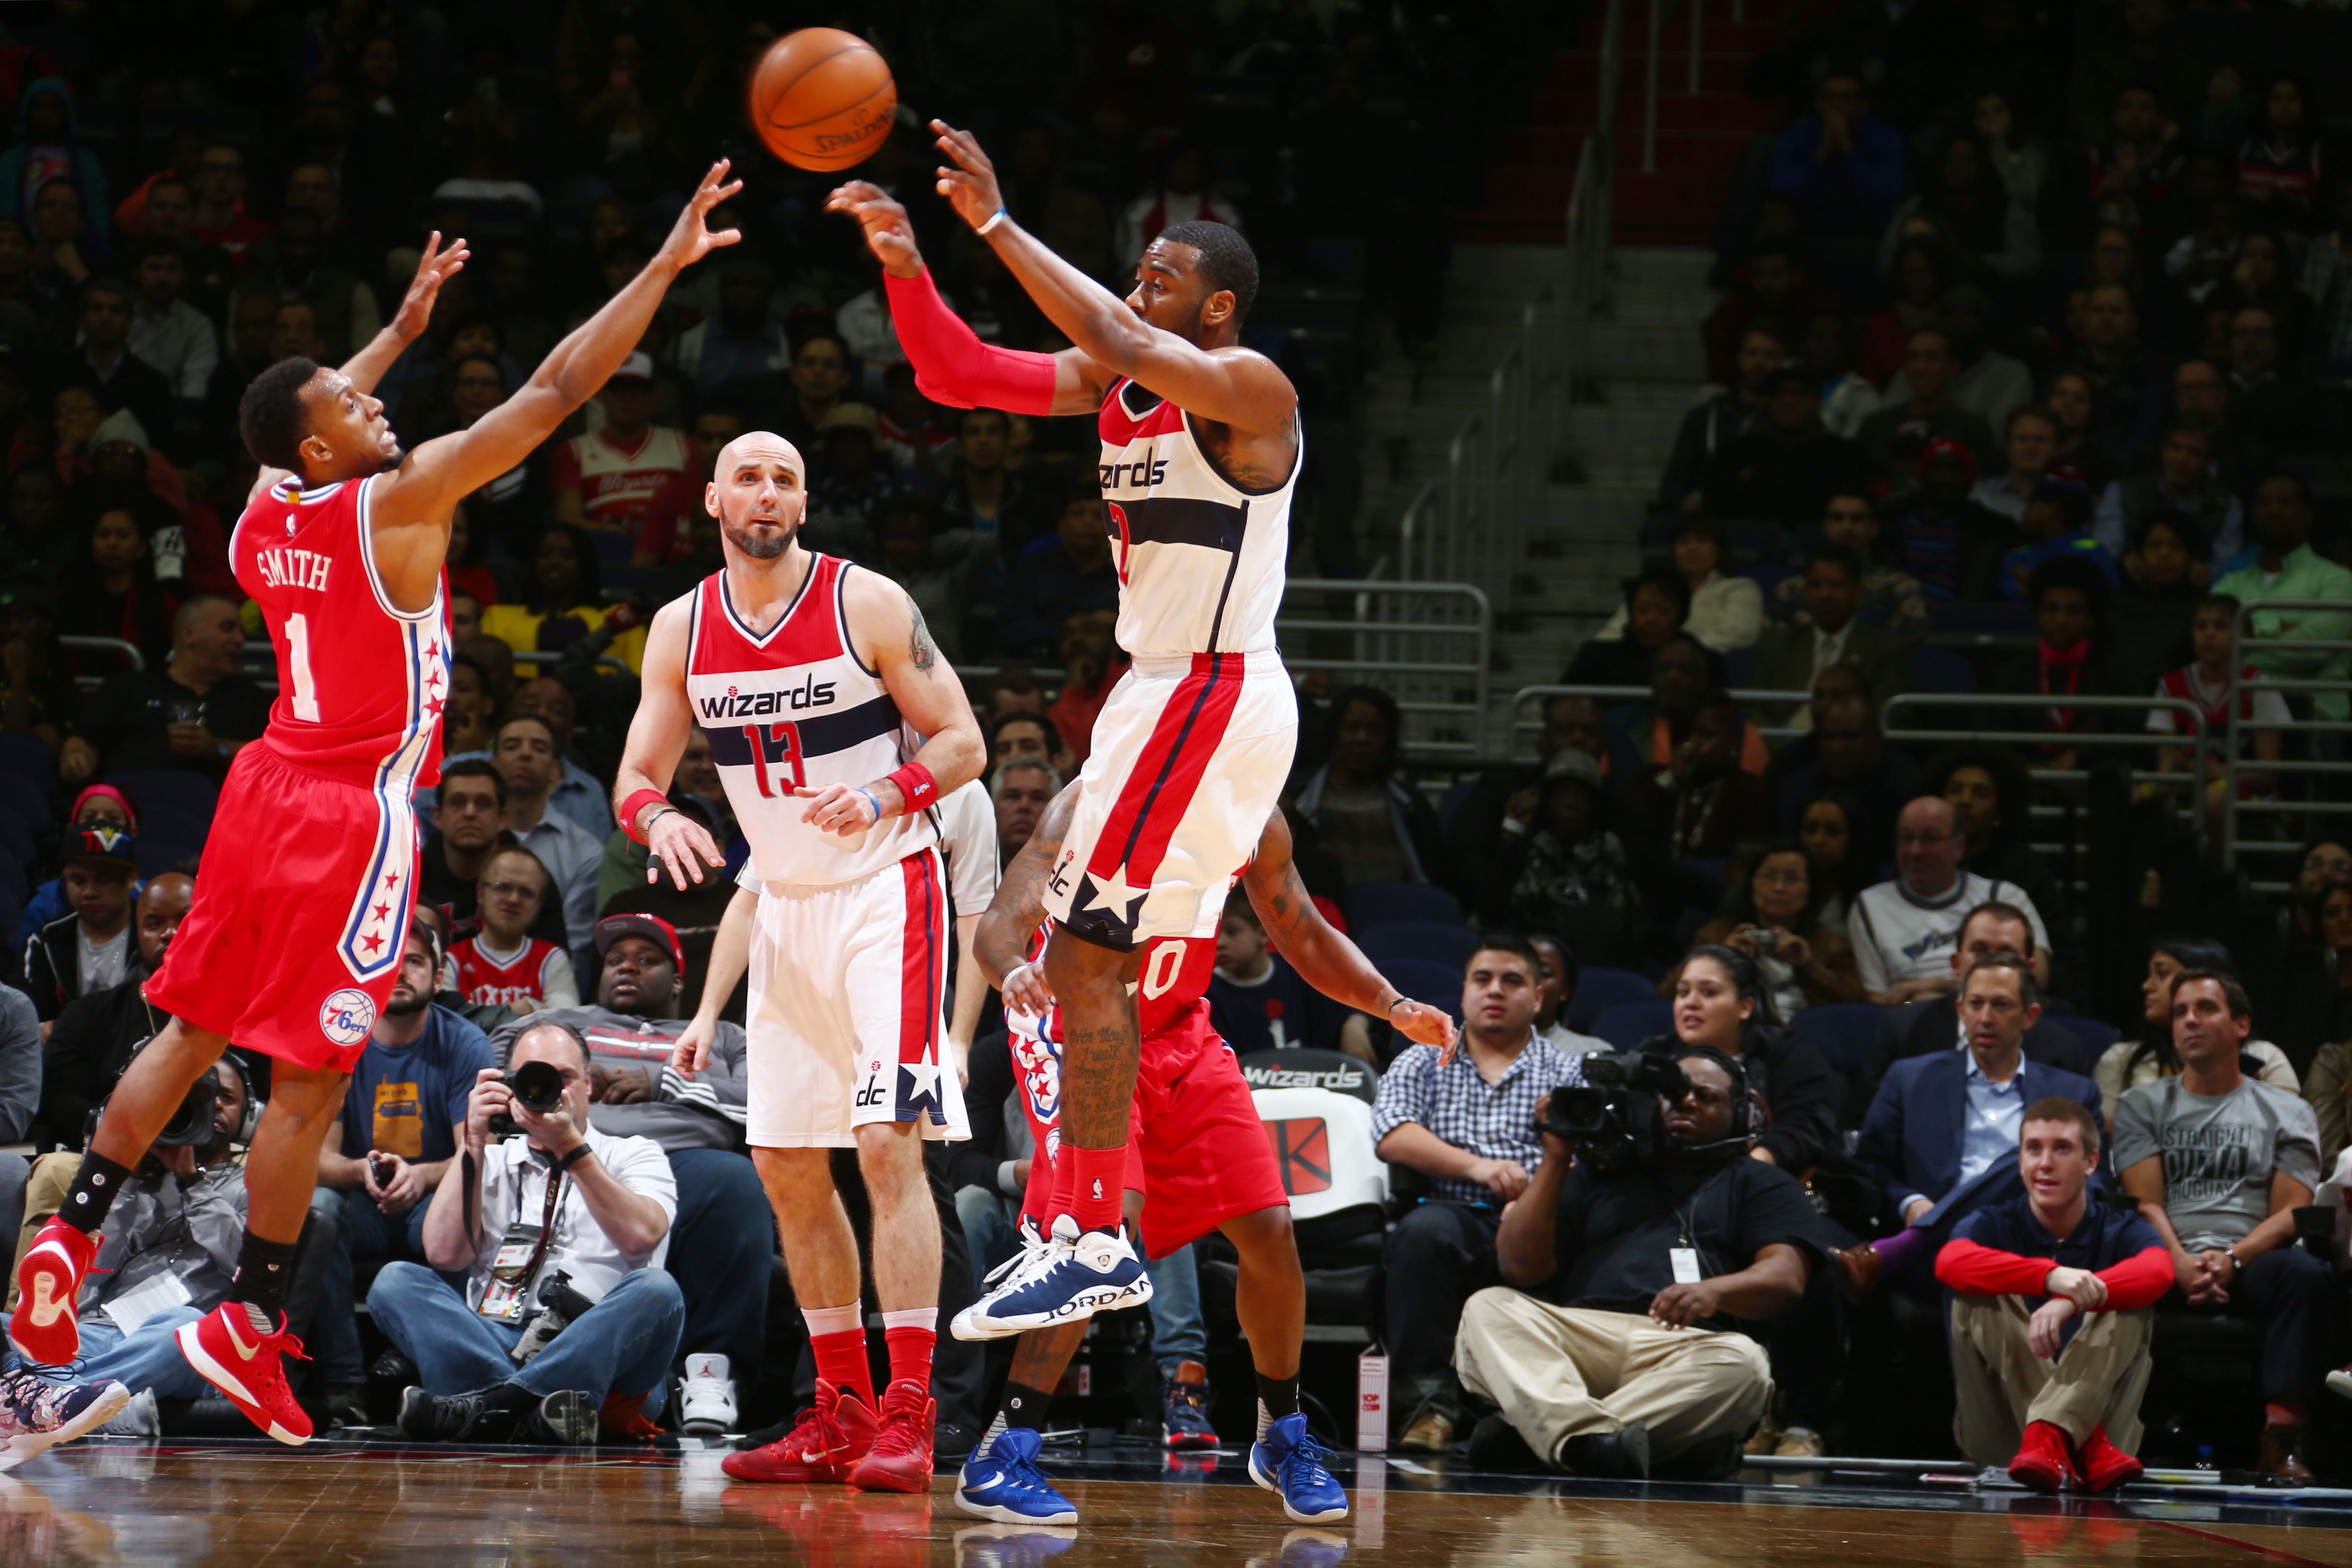 WASHINGTON, DC - FEBRUARY 29: John Wall #2 of the Washington Wizards passes the ball against the Philadelphia 76ers during the game on February 29, 2016 at Verizon Center in Washington, District of Columbia. (Photo by Ned Dishman/NBAE via Getty Images)